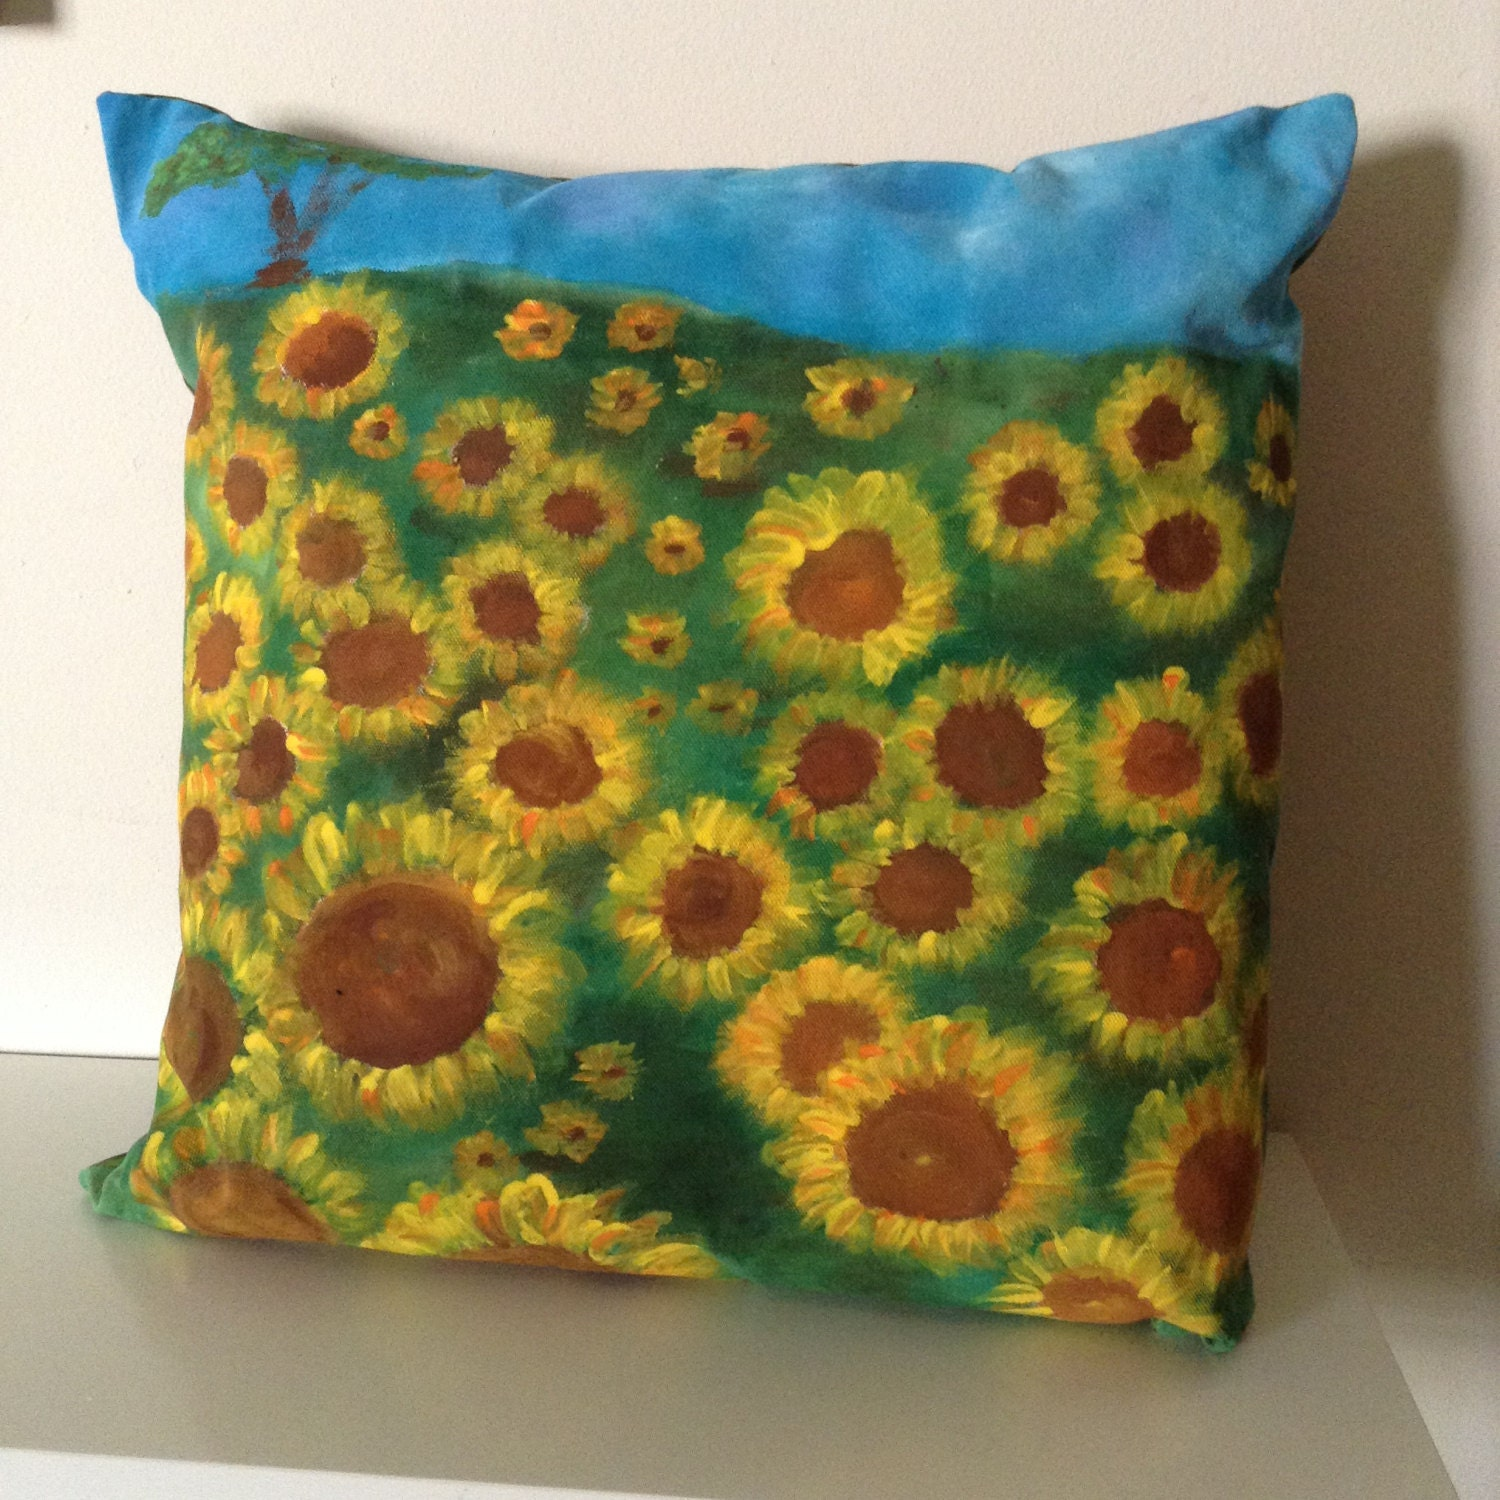 Decorative Pillows With Sunflowers : Sunflower Decorative Pillow / Sunflower Landscape Pillow